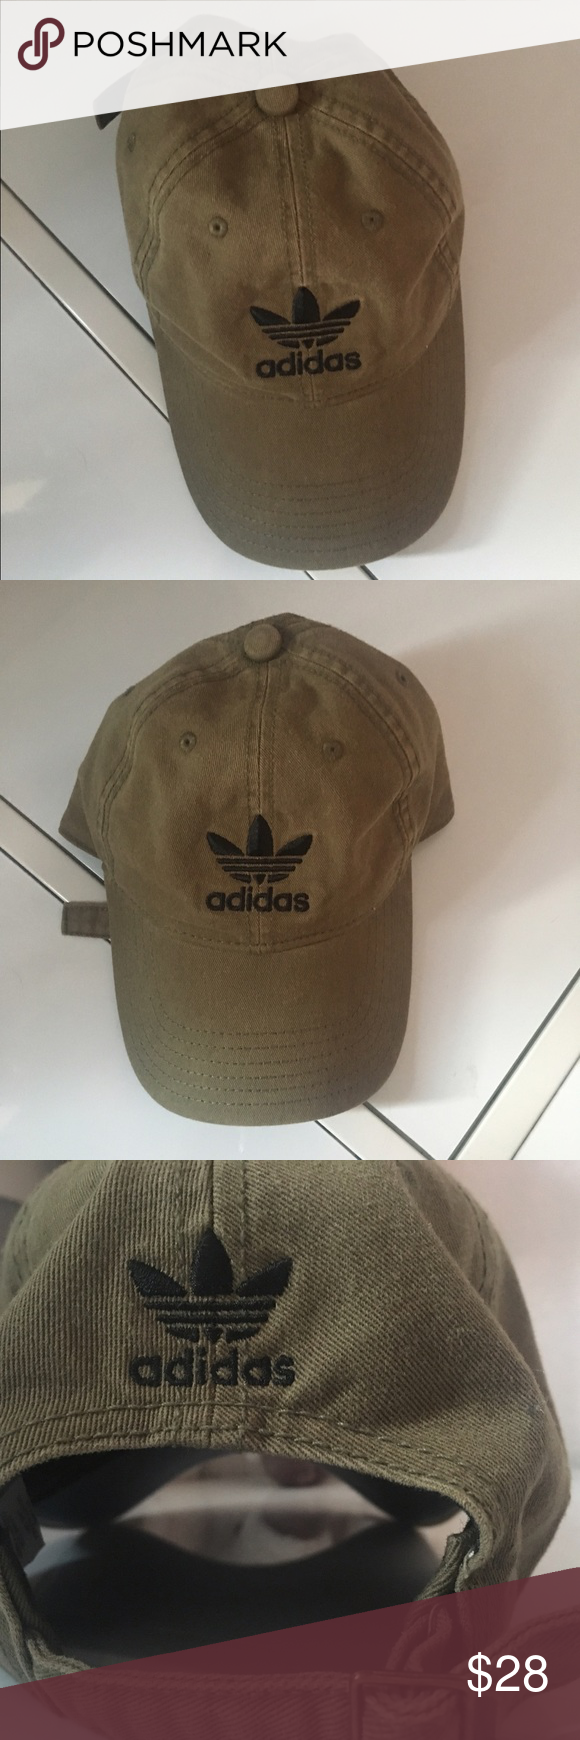 b2f5ebca106 ADIDAS OLIVE HAT BASEBALL CAP Olive green. Black lettering. Never used  adidas Accessories Hats